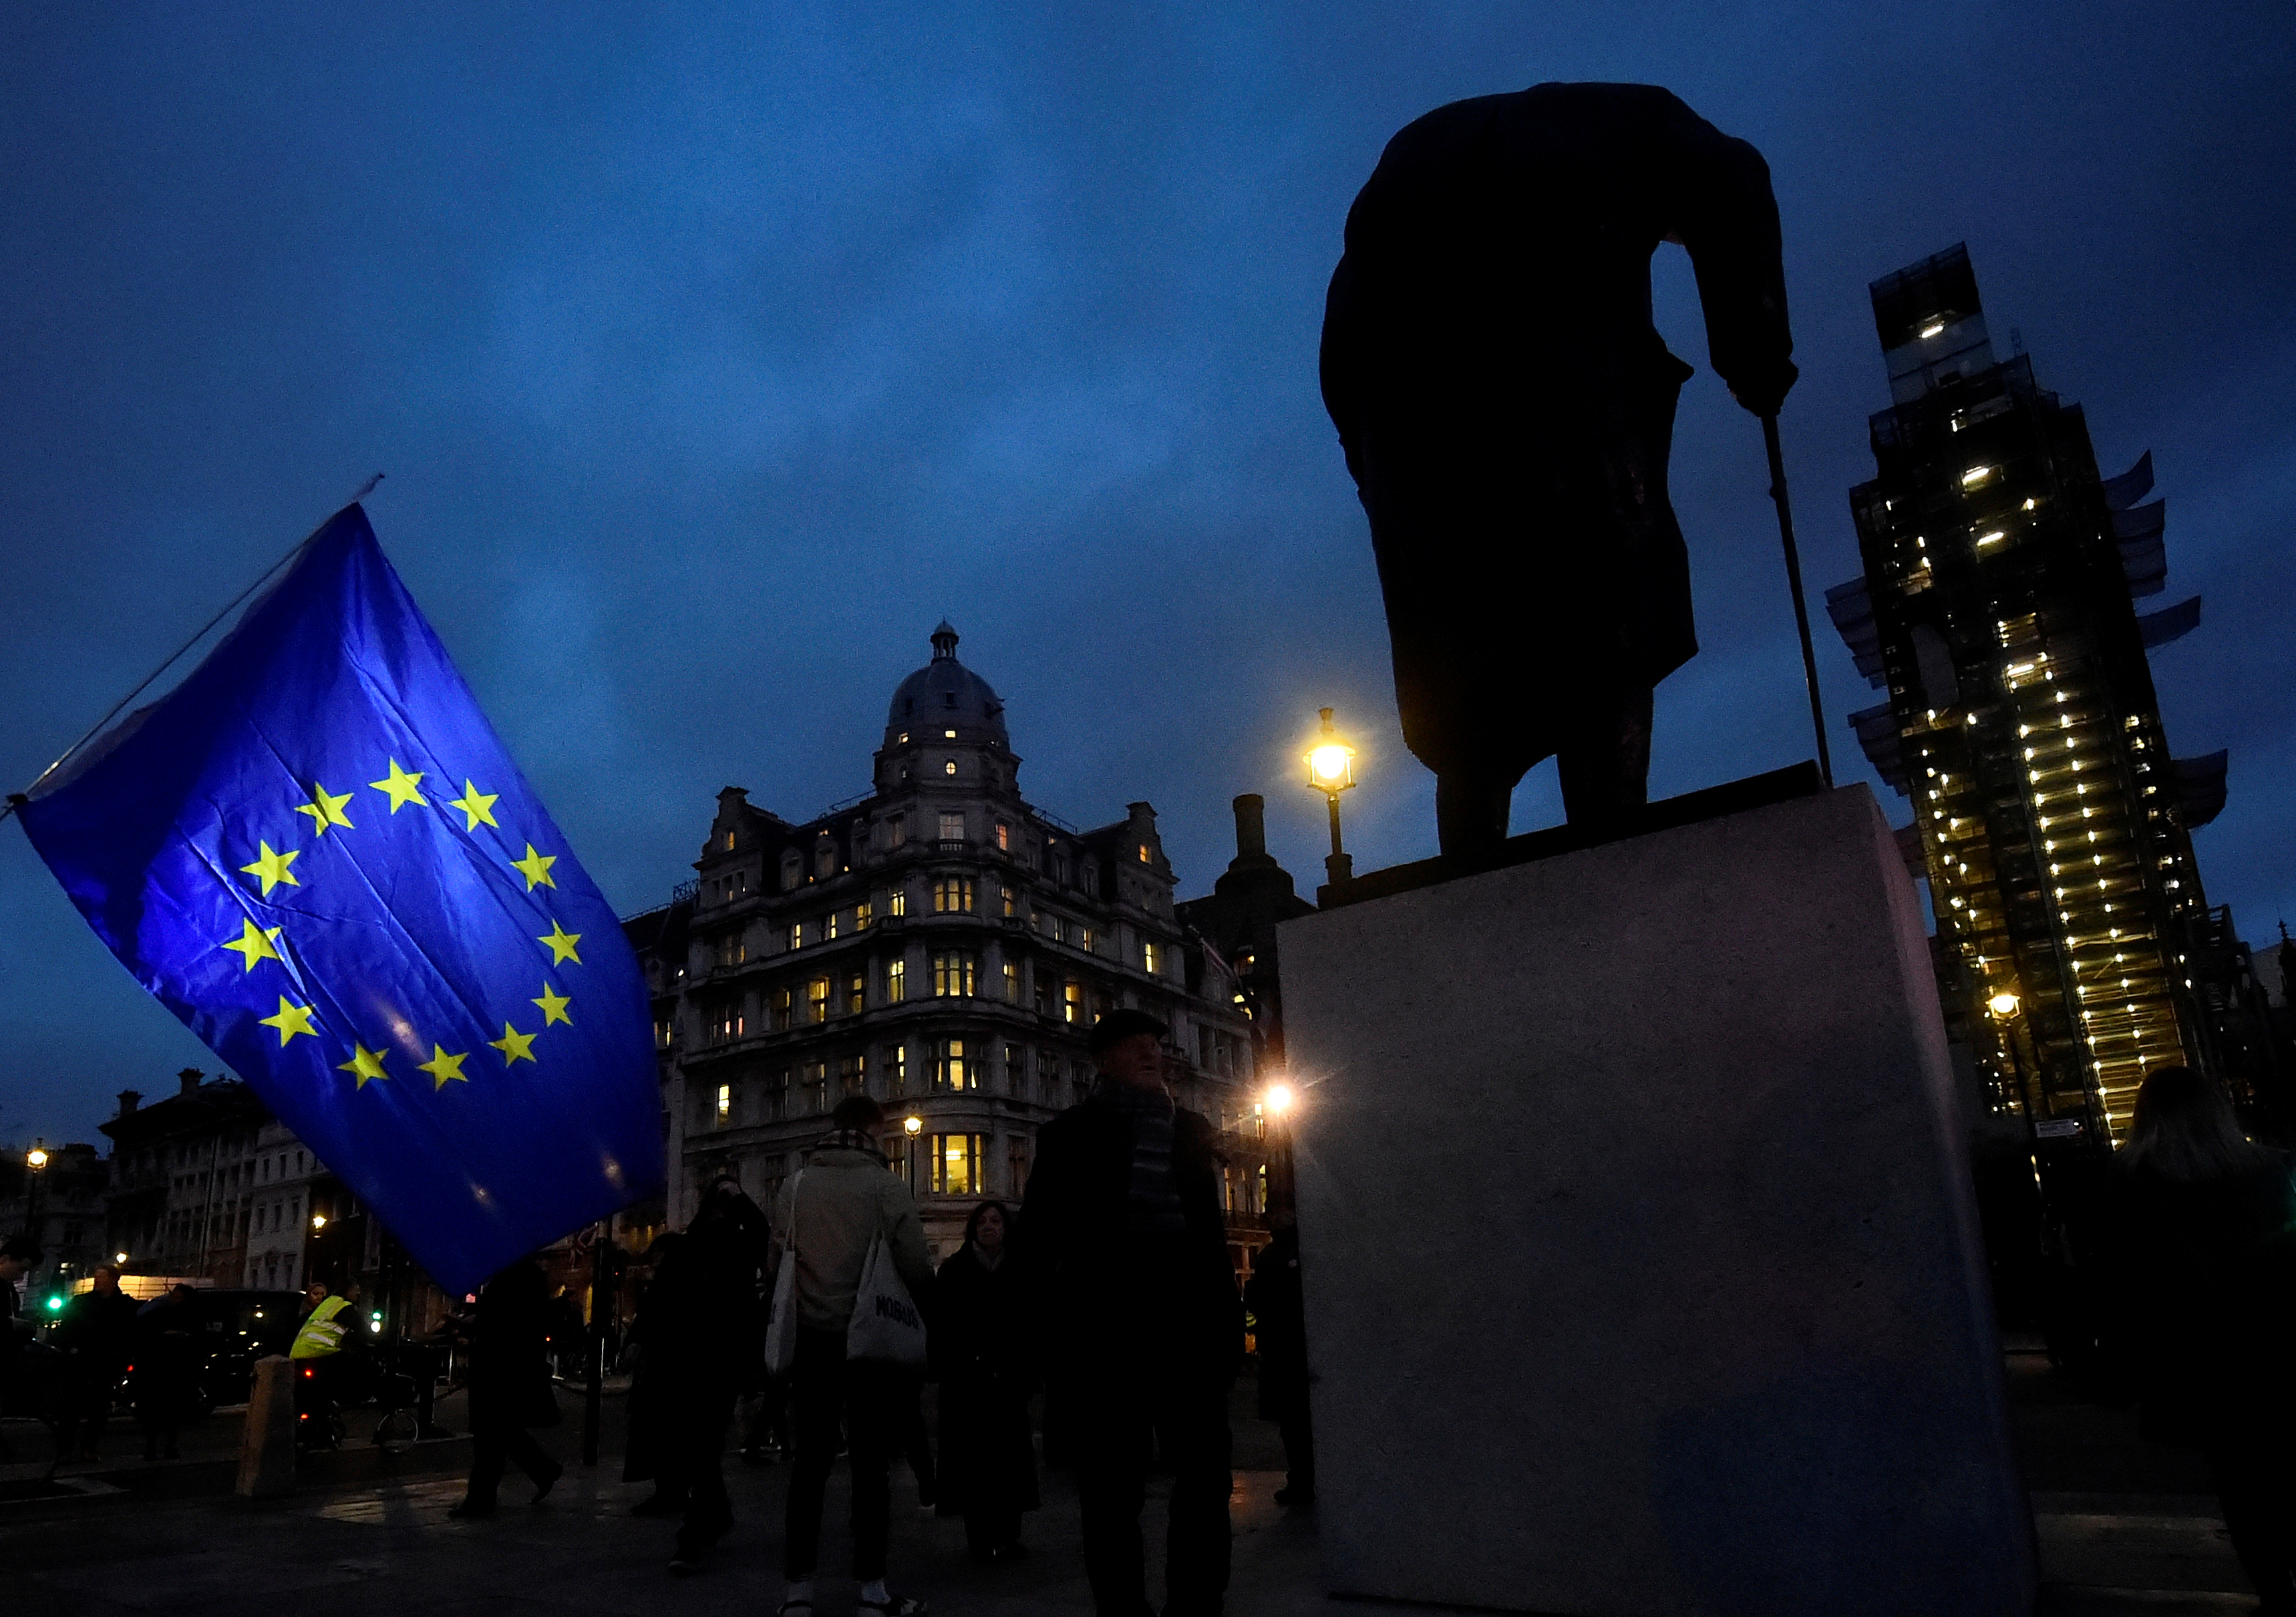 FILE PHOTO: An EU flag flutters next to the statue of Winston Churchill outside the Houses of Parliament, ahead of a vote on Prime Minister Theresa May's Brexit deal, in London, Britain January 15, 2019. REUTERS/Clodagh Kilcoyne